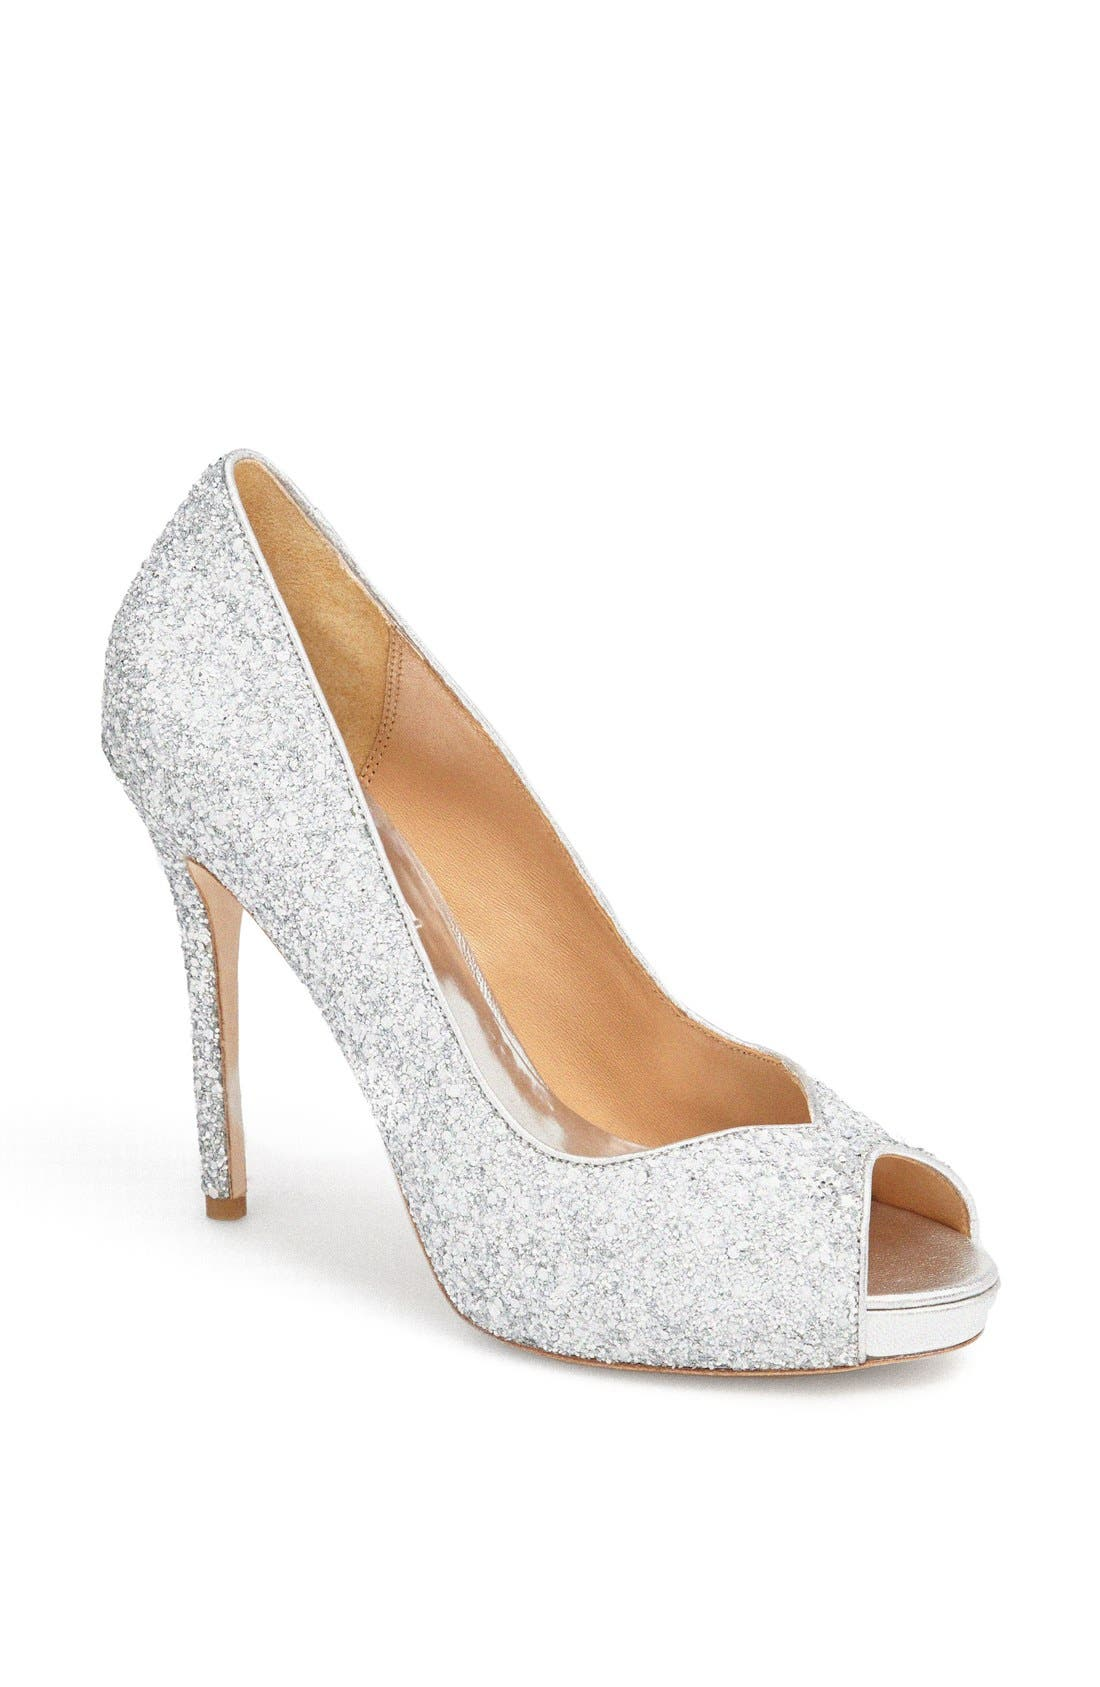 Alternate Image 1 Selected - Badgley Mischka 'Kassidy' Glitter Pump